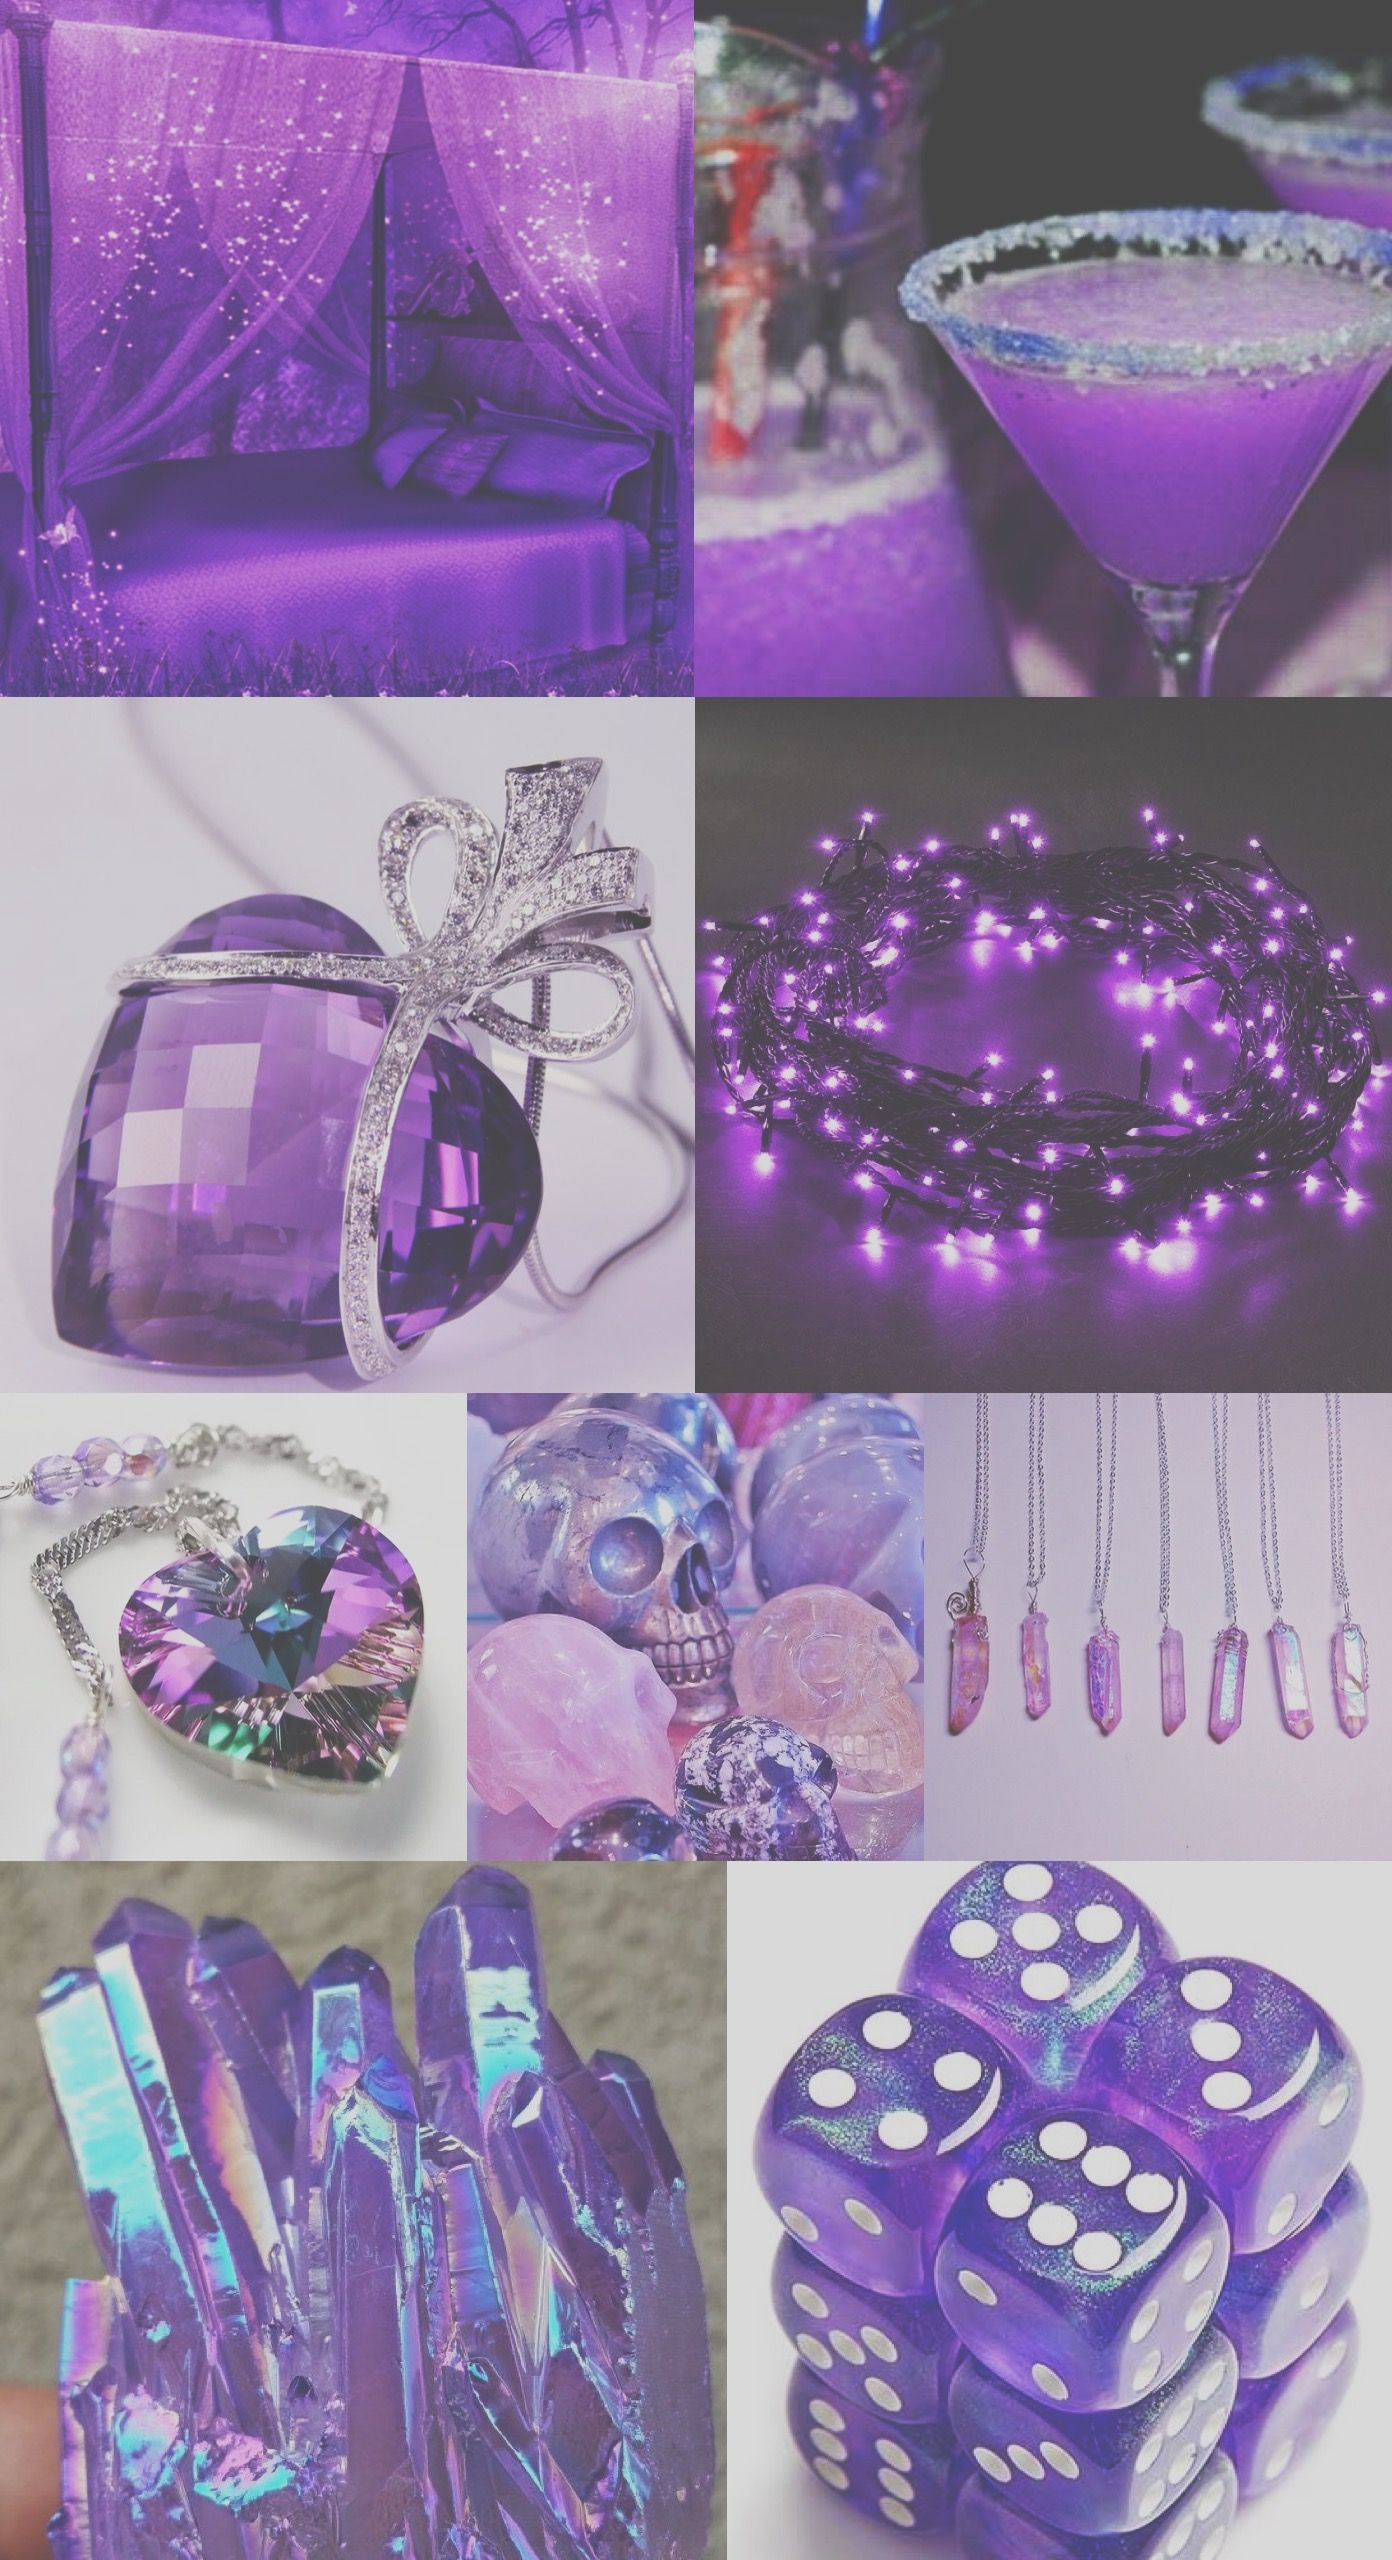 Purple sparkly festive wallpaper background glitter - Purple glitter wallpaper hd ...